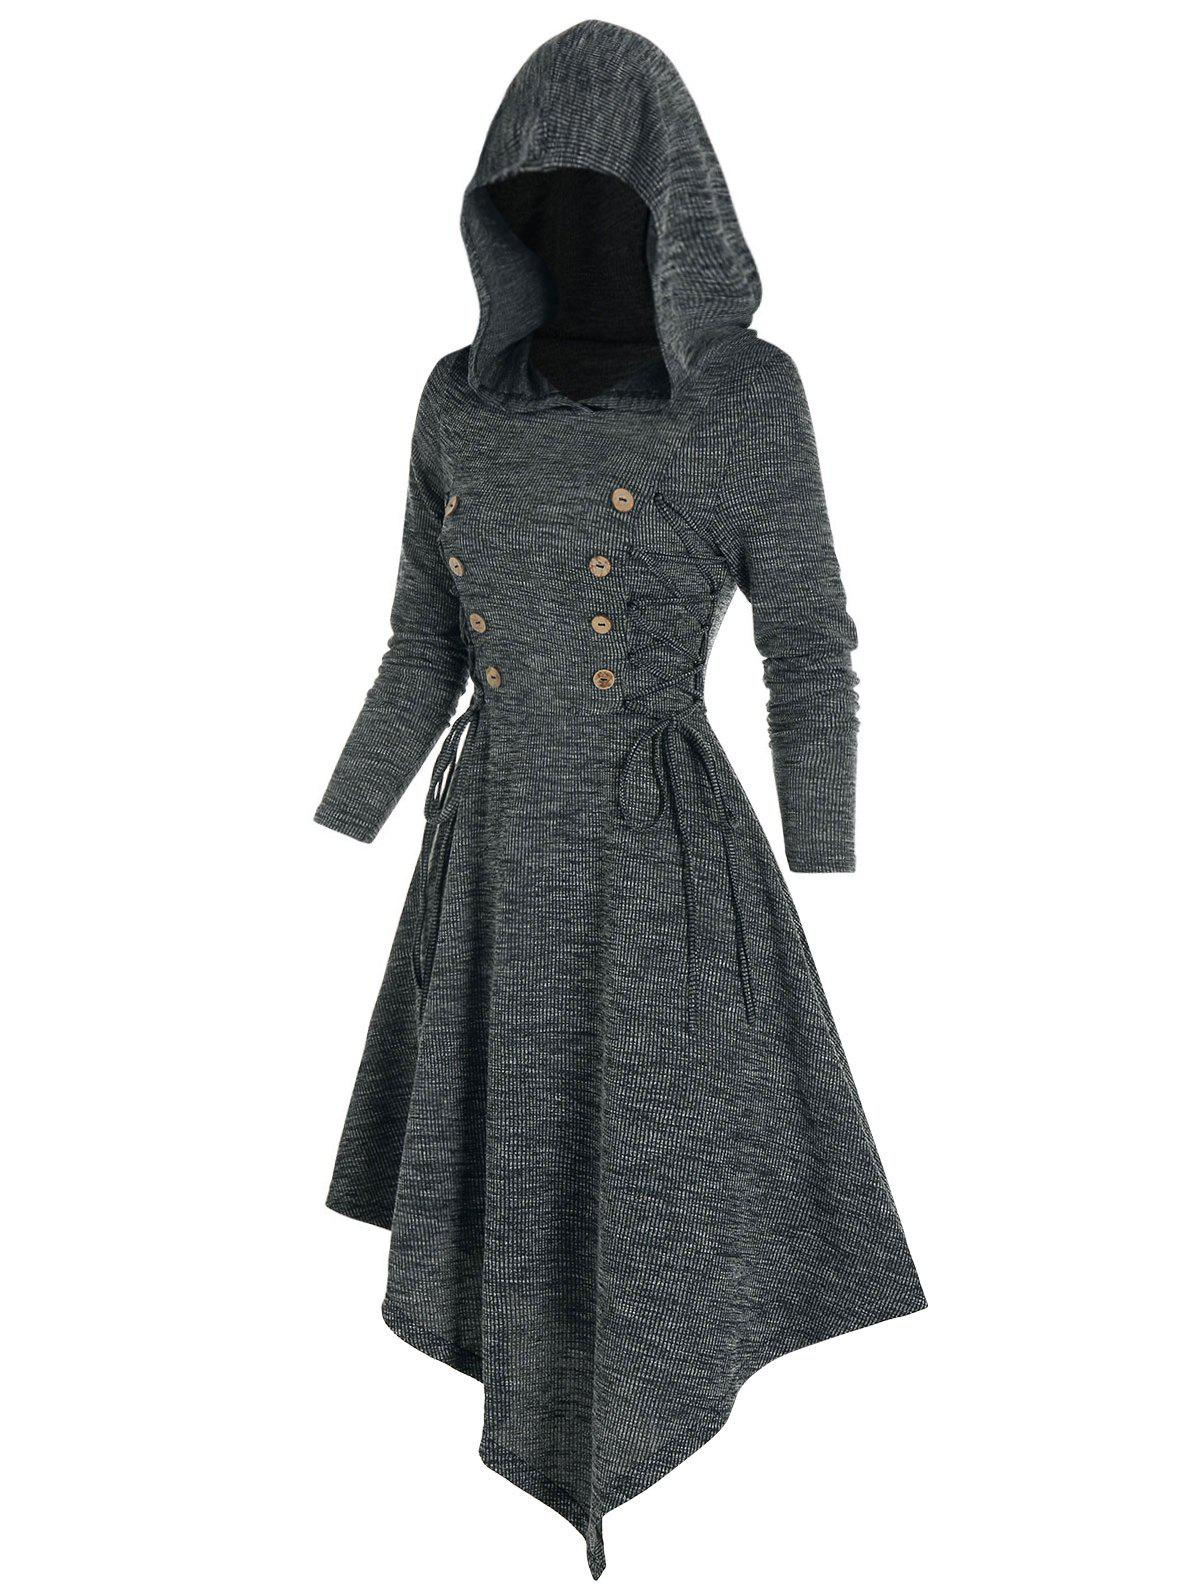 Lace Up Hooded Asymmetrical Knitted Dress - ASH GRAY 3XL